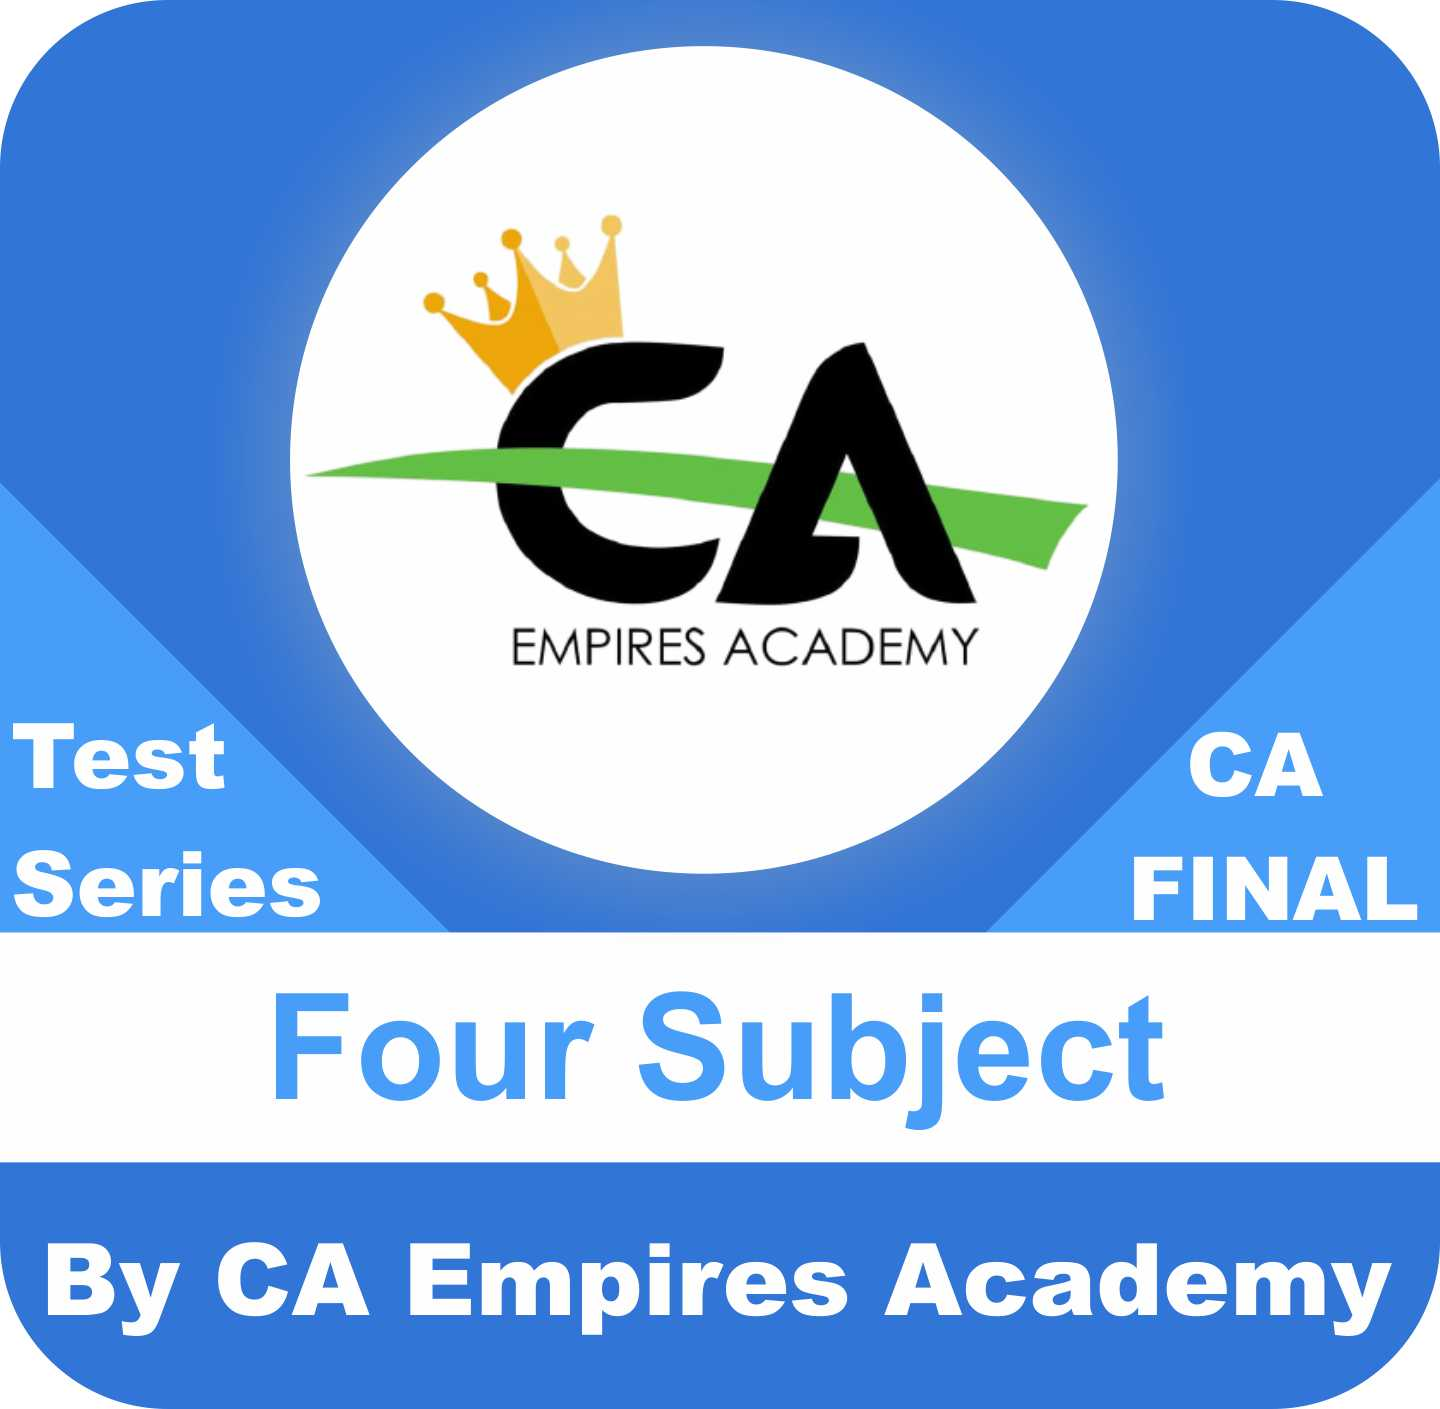 Any Four Subject Test Series in Platinum Plan